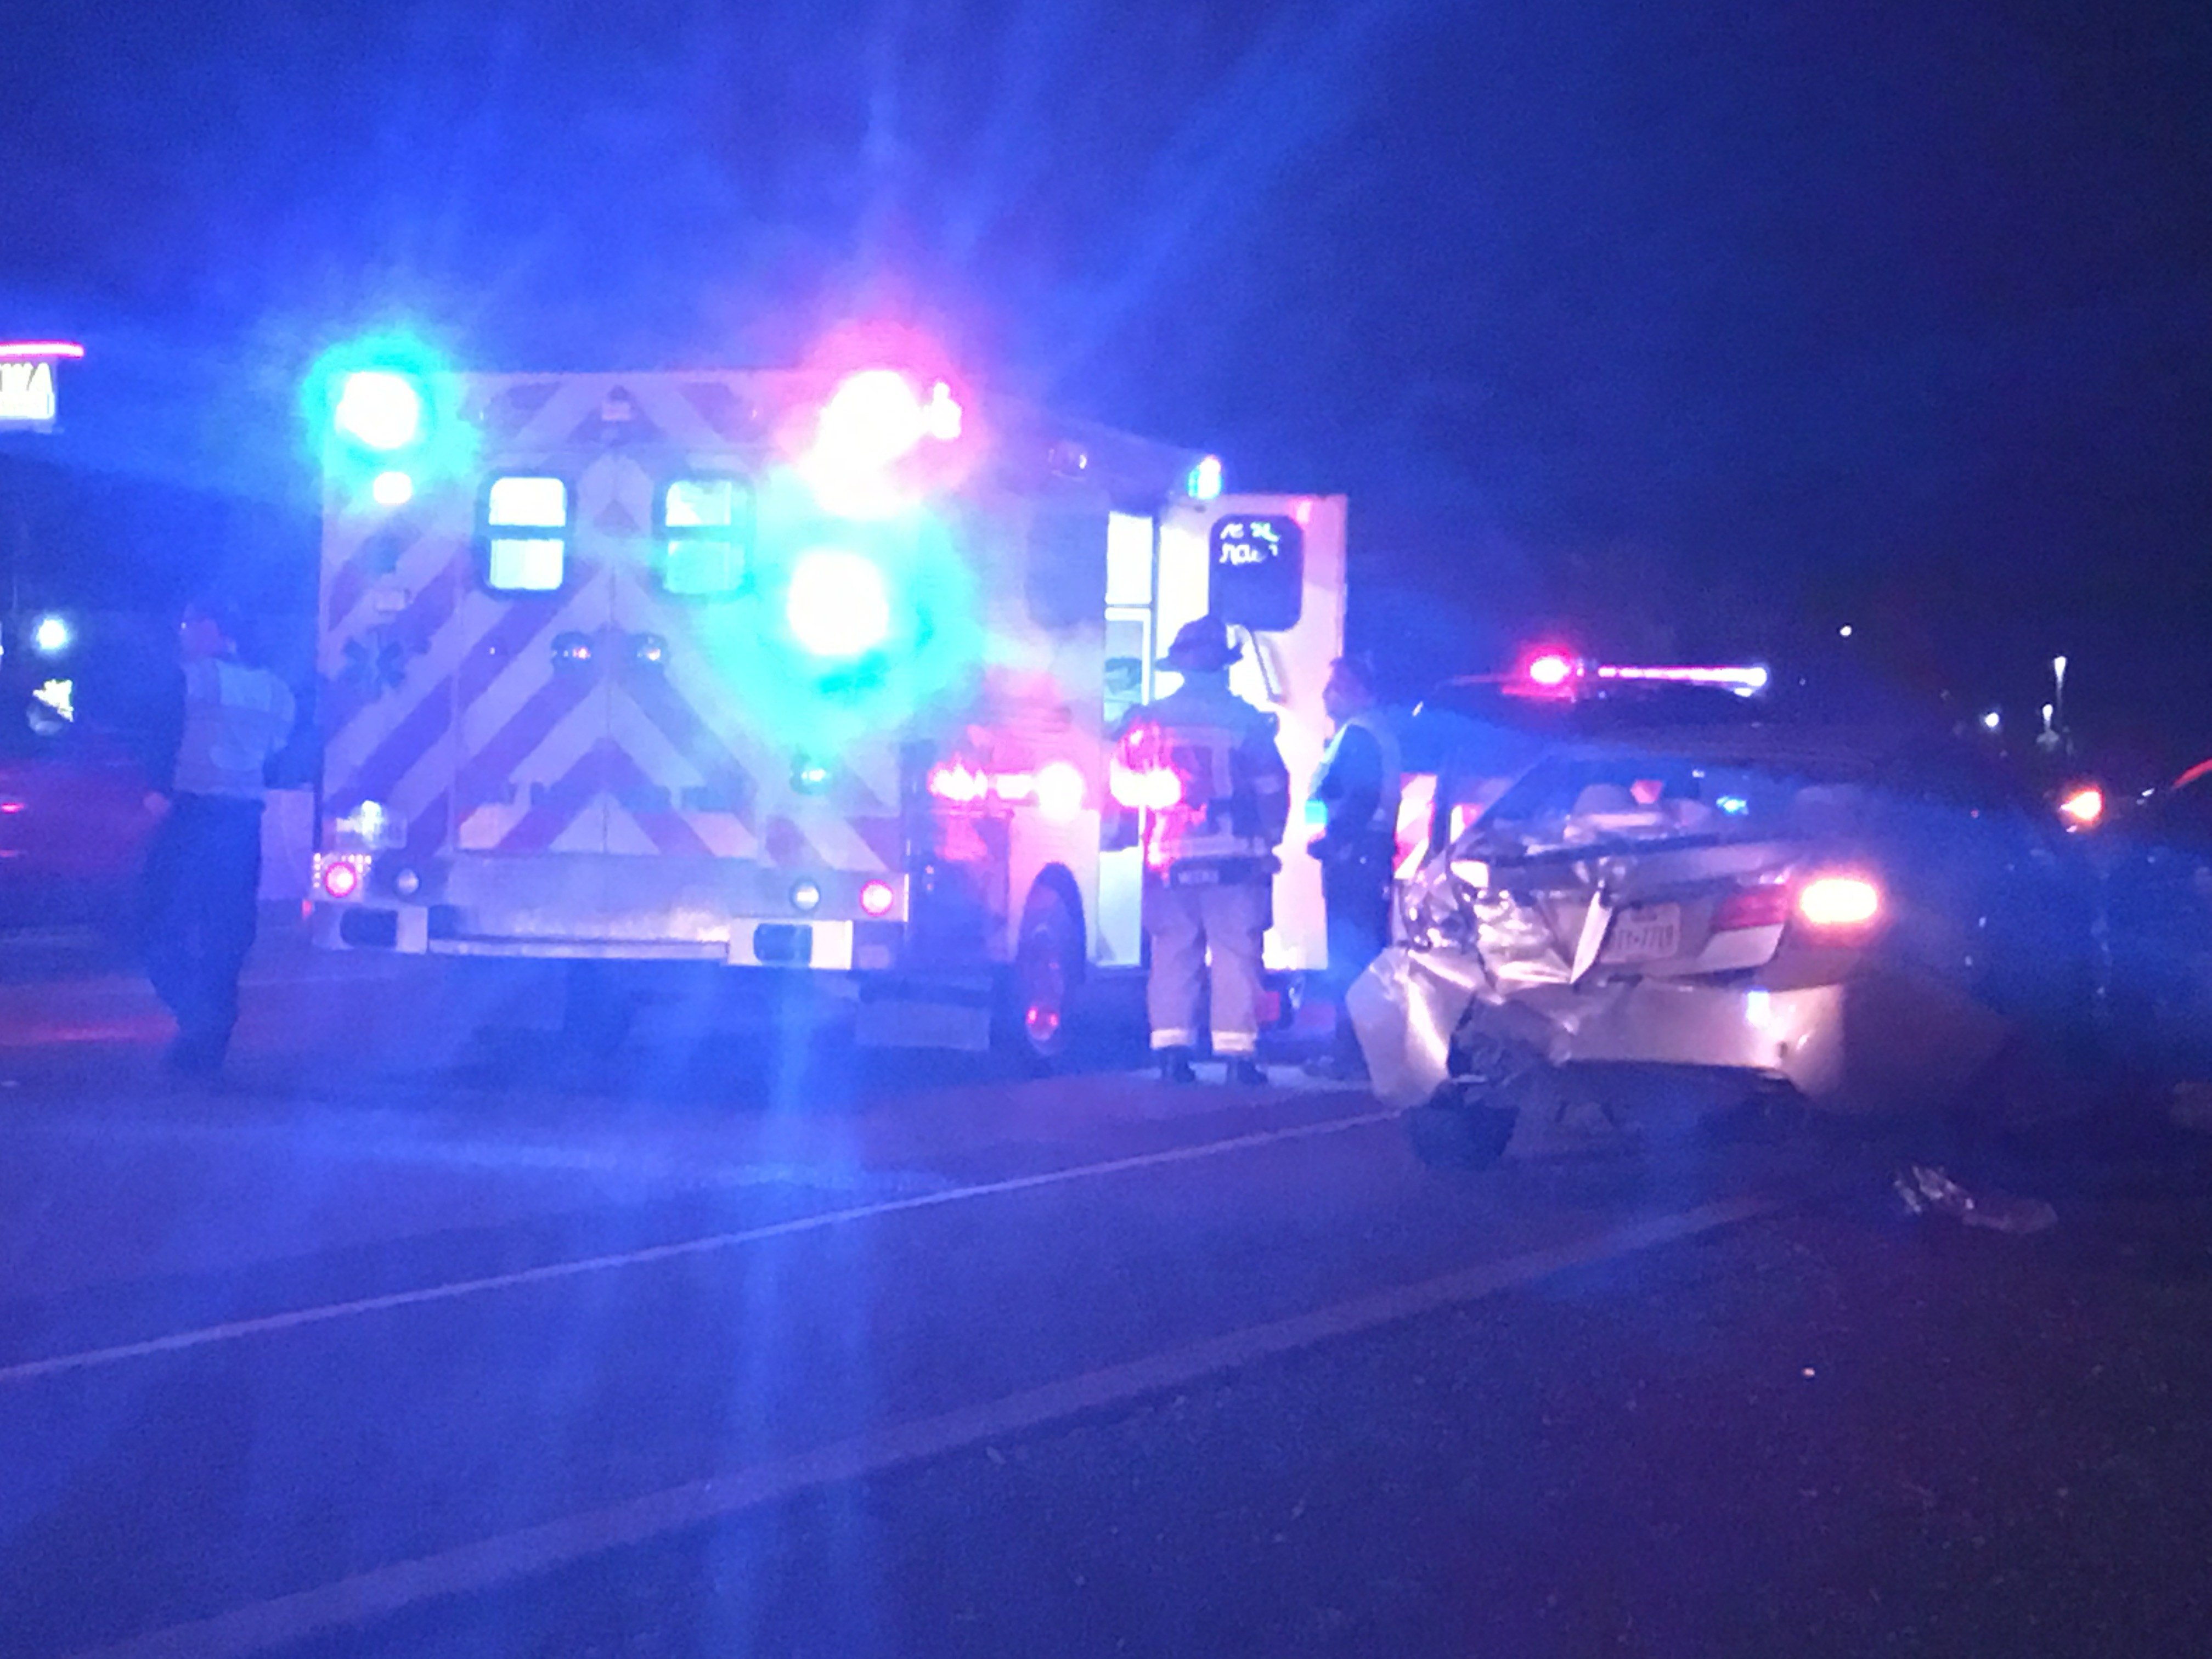 CCPD said four individuals were taken to a hospital with non-life-threatening injuries.